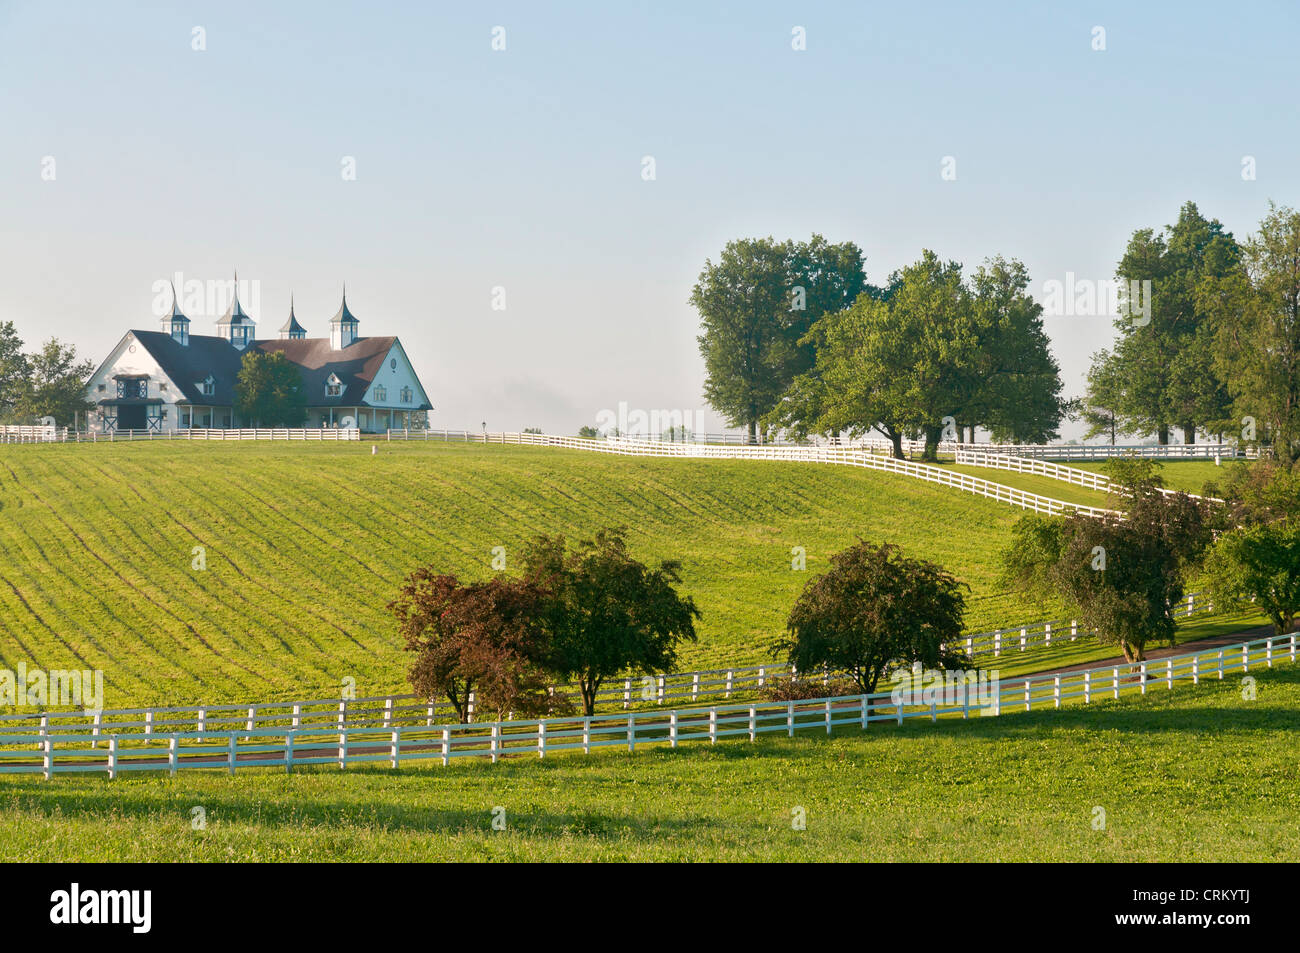 Kentucky, Lexington, Manchester Farm, Thoroughbred horse breeding farm, barn. - Stock Image